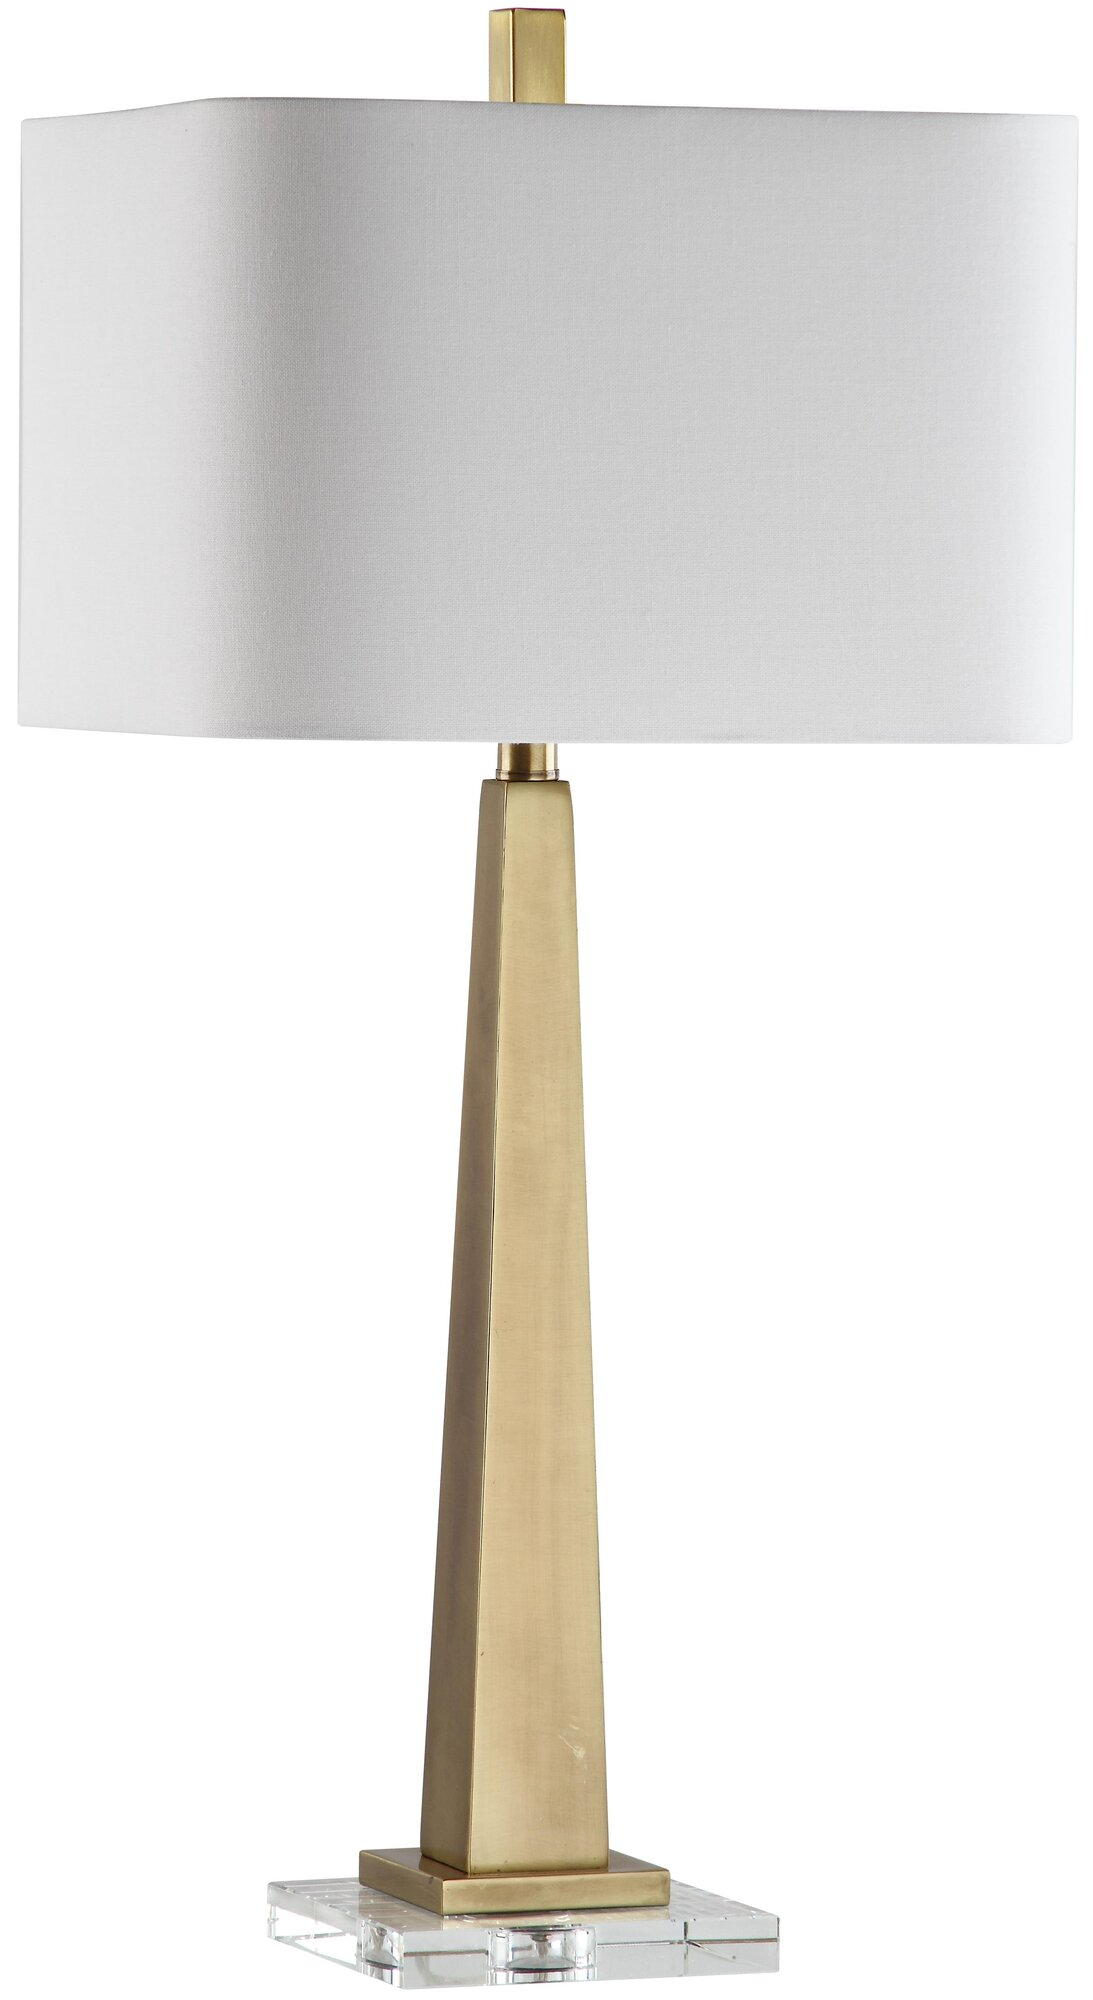 about mariana home modern 32 table lamp with rectangular shade. Black Bedroom Furniture Sets. Home Design Ideas